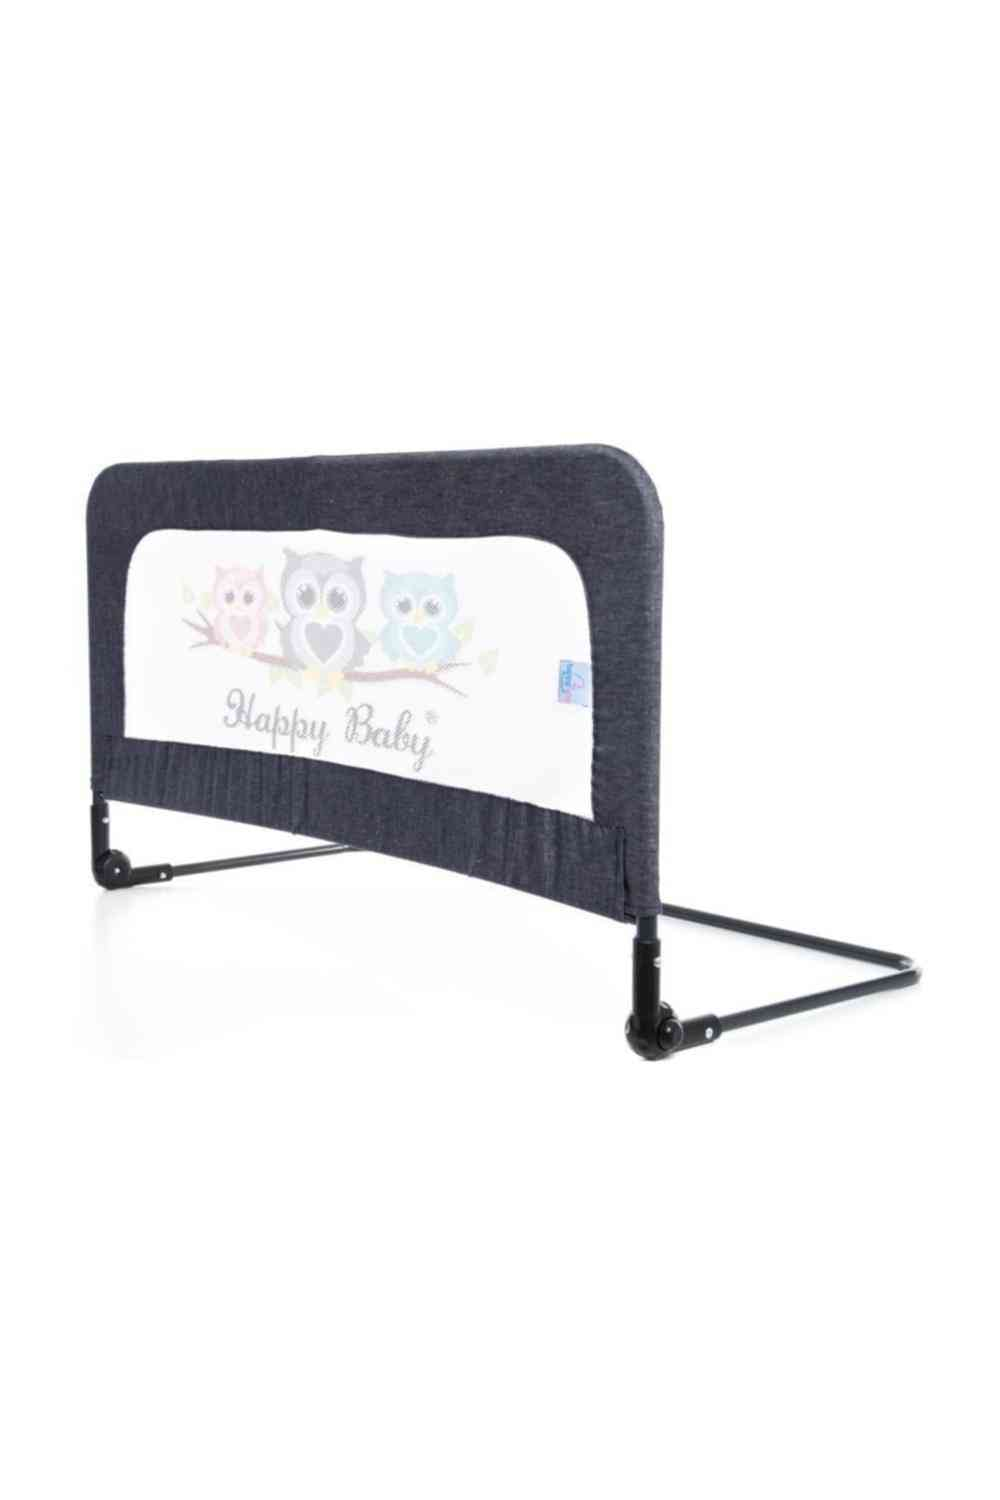 100*45cm Baby Protection Foldable Bed Barrier